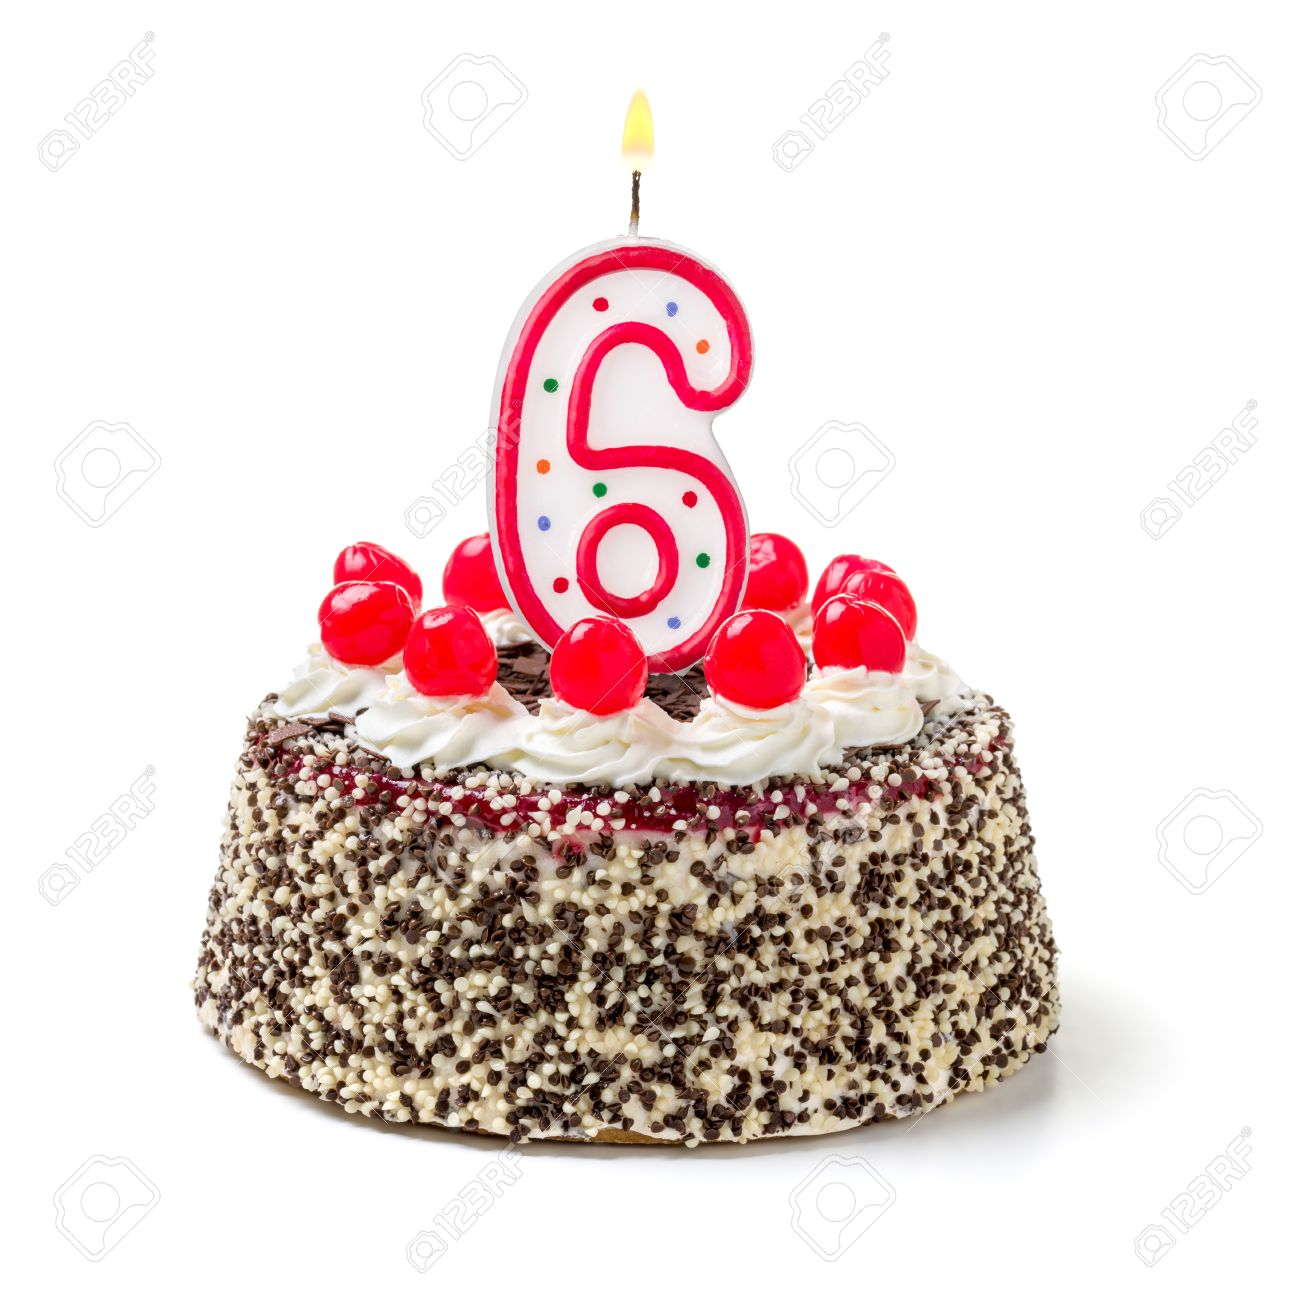 Admirable Birthday Cake With Burning Candle Number 6 Stock Photo Picture Funny Birthday Cards Online Alyptdamsfinfo